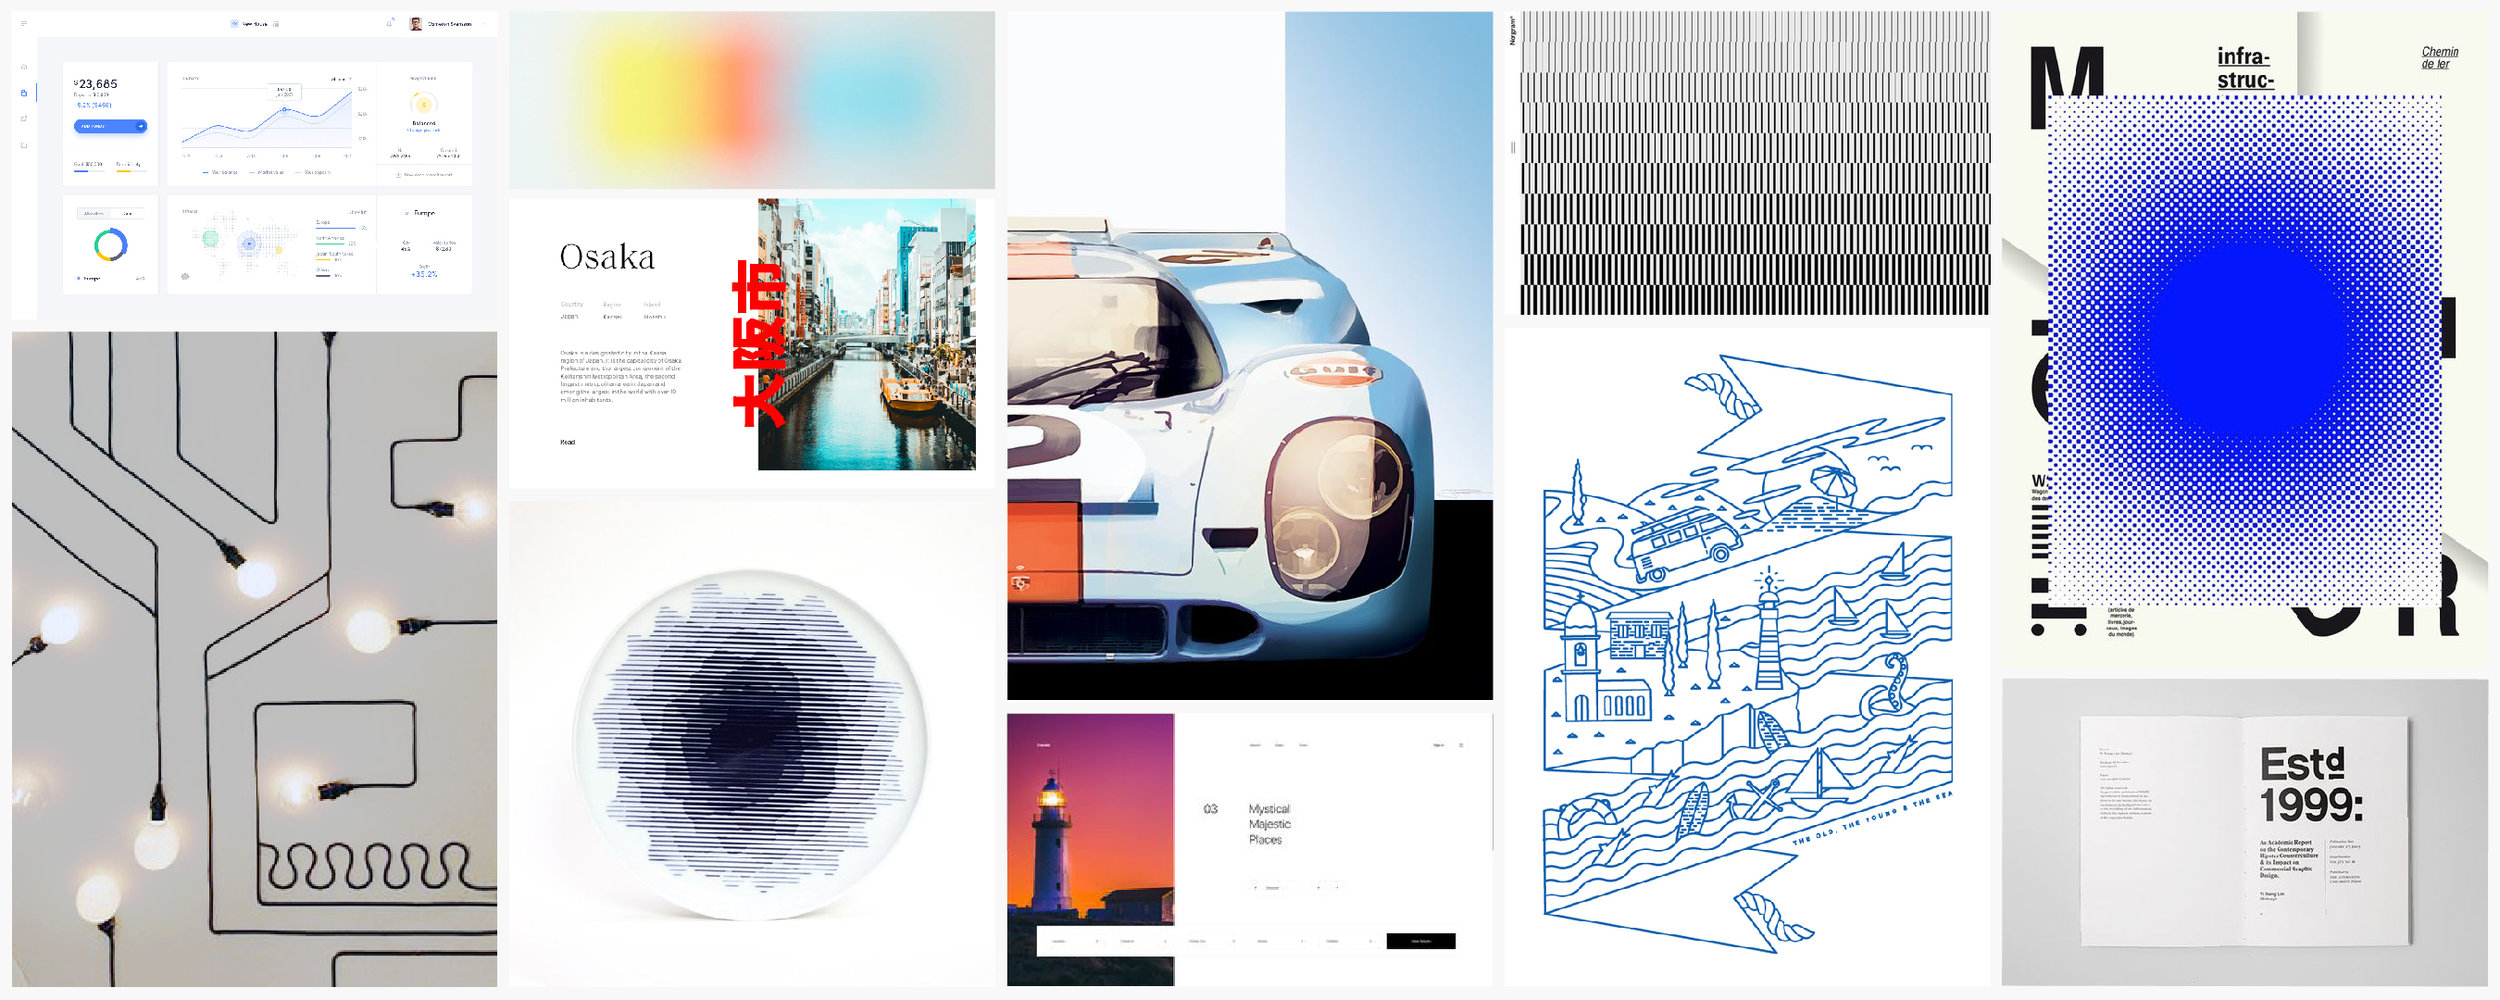 Mood-board for the website and platform. We focussed on a minimal and clean design, using heavy contrast between fonts, play with whitespace, line illustrations and graphic ways to visualise energy.